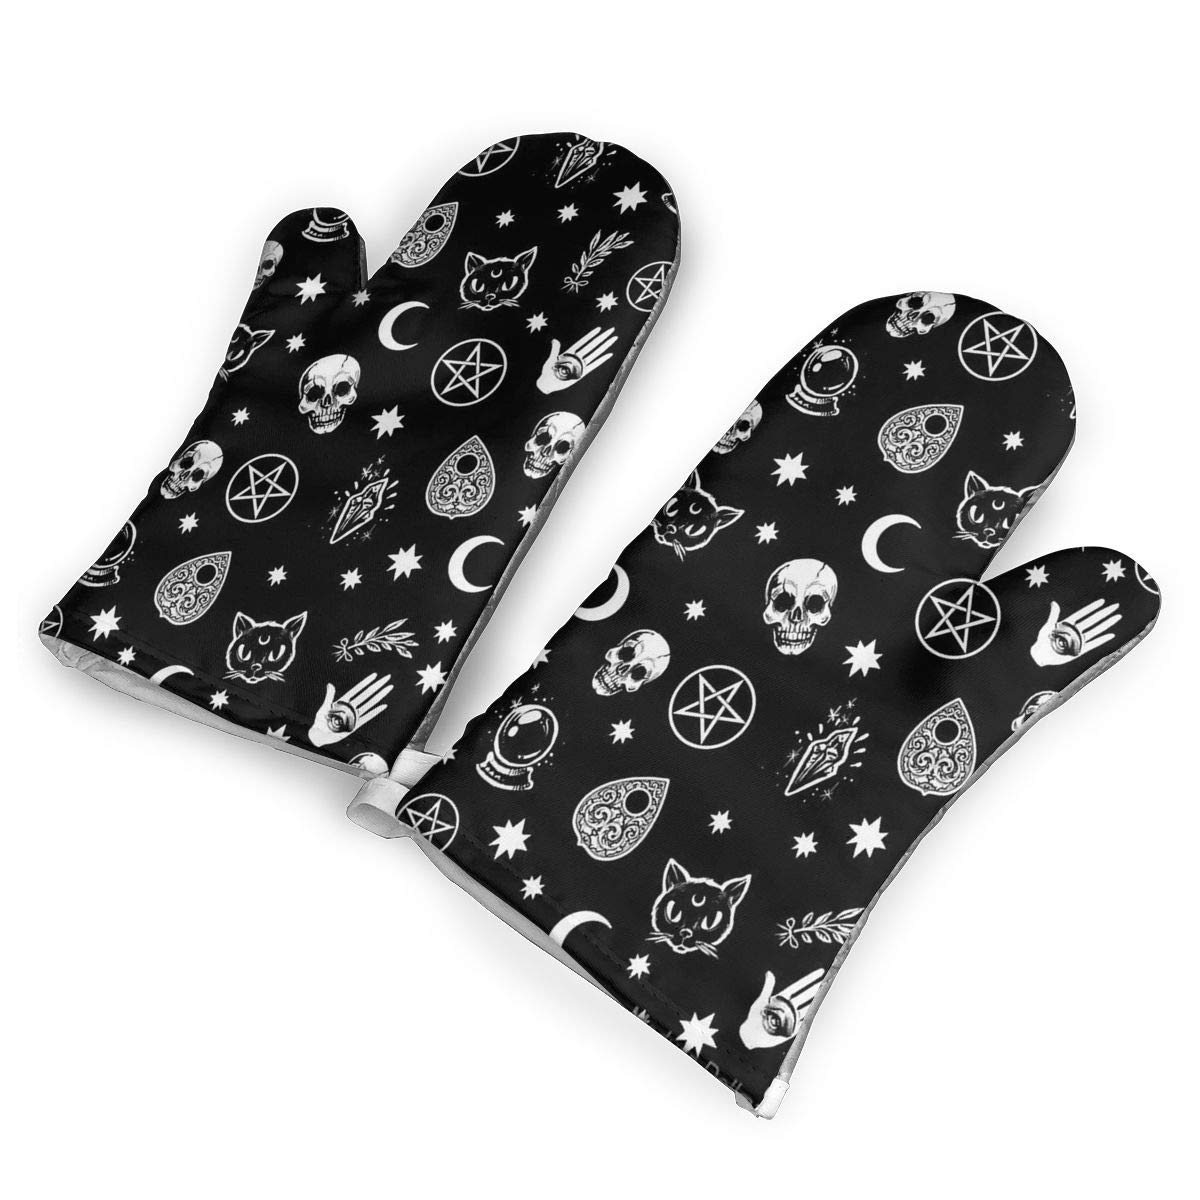 Colorful Skull Cat Moon Gothic Pattern.jpg Heat Resistant to 500?? F,1 Pair of Non-Slip Kitchen Oven Gloves for Cooking,Baking,Grilling,Barbecue Potholders Oven Mitts Set